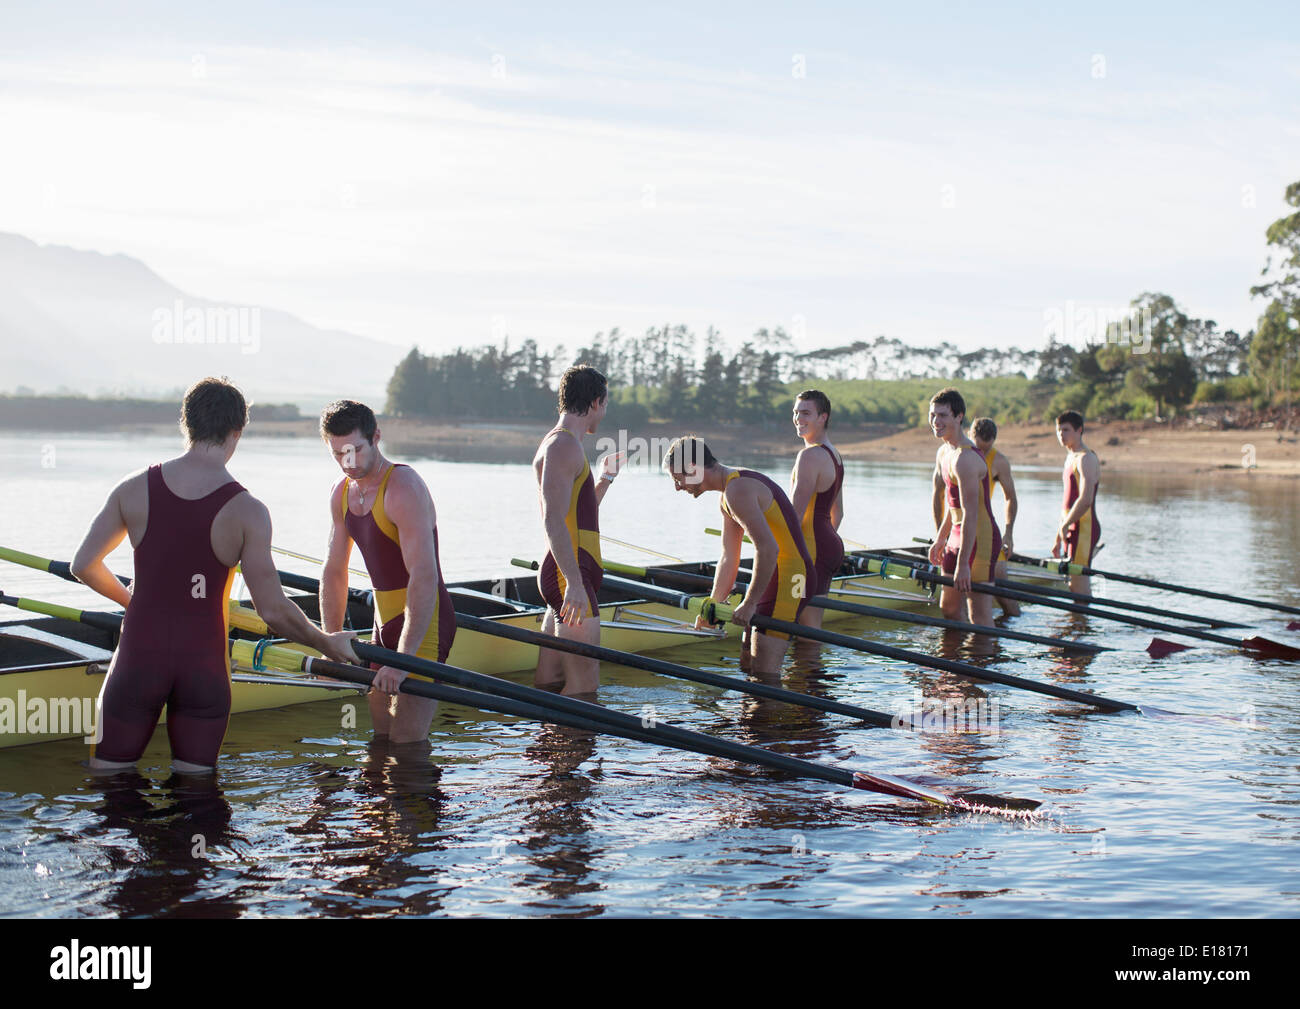 Rowing team placing boat on lake - Stock Image